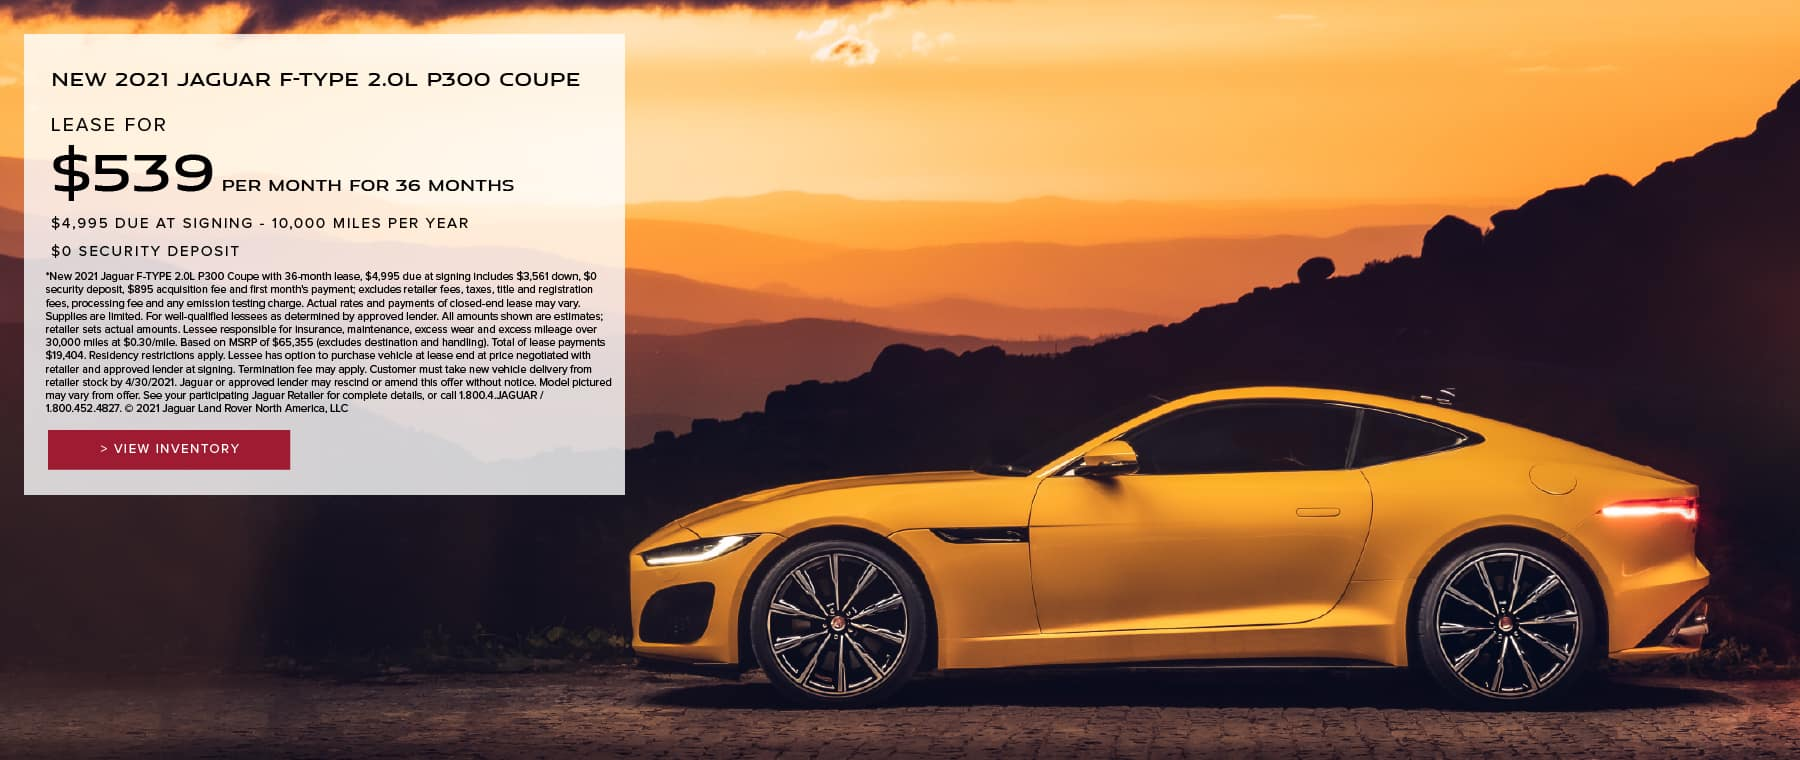 NEW 2021 JAGUAR F-TYPE 2.0L P300 COUPE. $539 PER MONTH. 36 MONTH LEASE TERM. $4,995 CASH DUE AT SIGNING. $0 SECURITY DEPOSIT. 7,500 MILES PER YEAR. INCLUDES $1,500 CUSTOMER CREDIT. EXCLUDES RETAILER FEES, TAXES, TITLE AND REGISTRATION FEES, PROCESSING FEE AND ANY EMISSION TESTING CHARGE. OFFER ENDS 4/30/2021. YELLOW JAGUAR F-TYPE COUPE PARKED OVERLOOKING SUNSET.